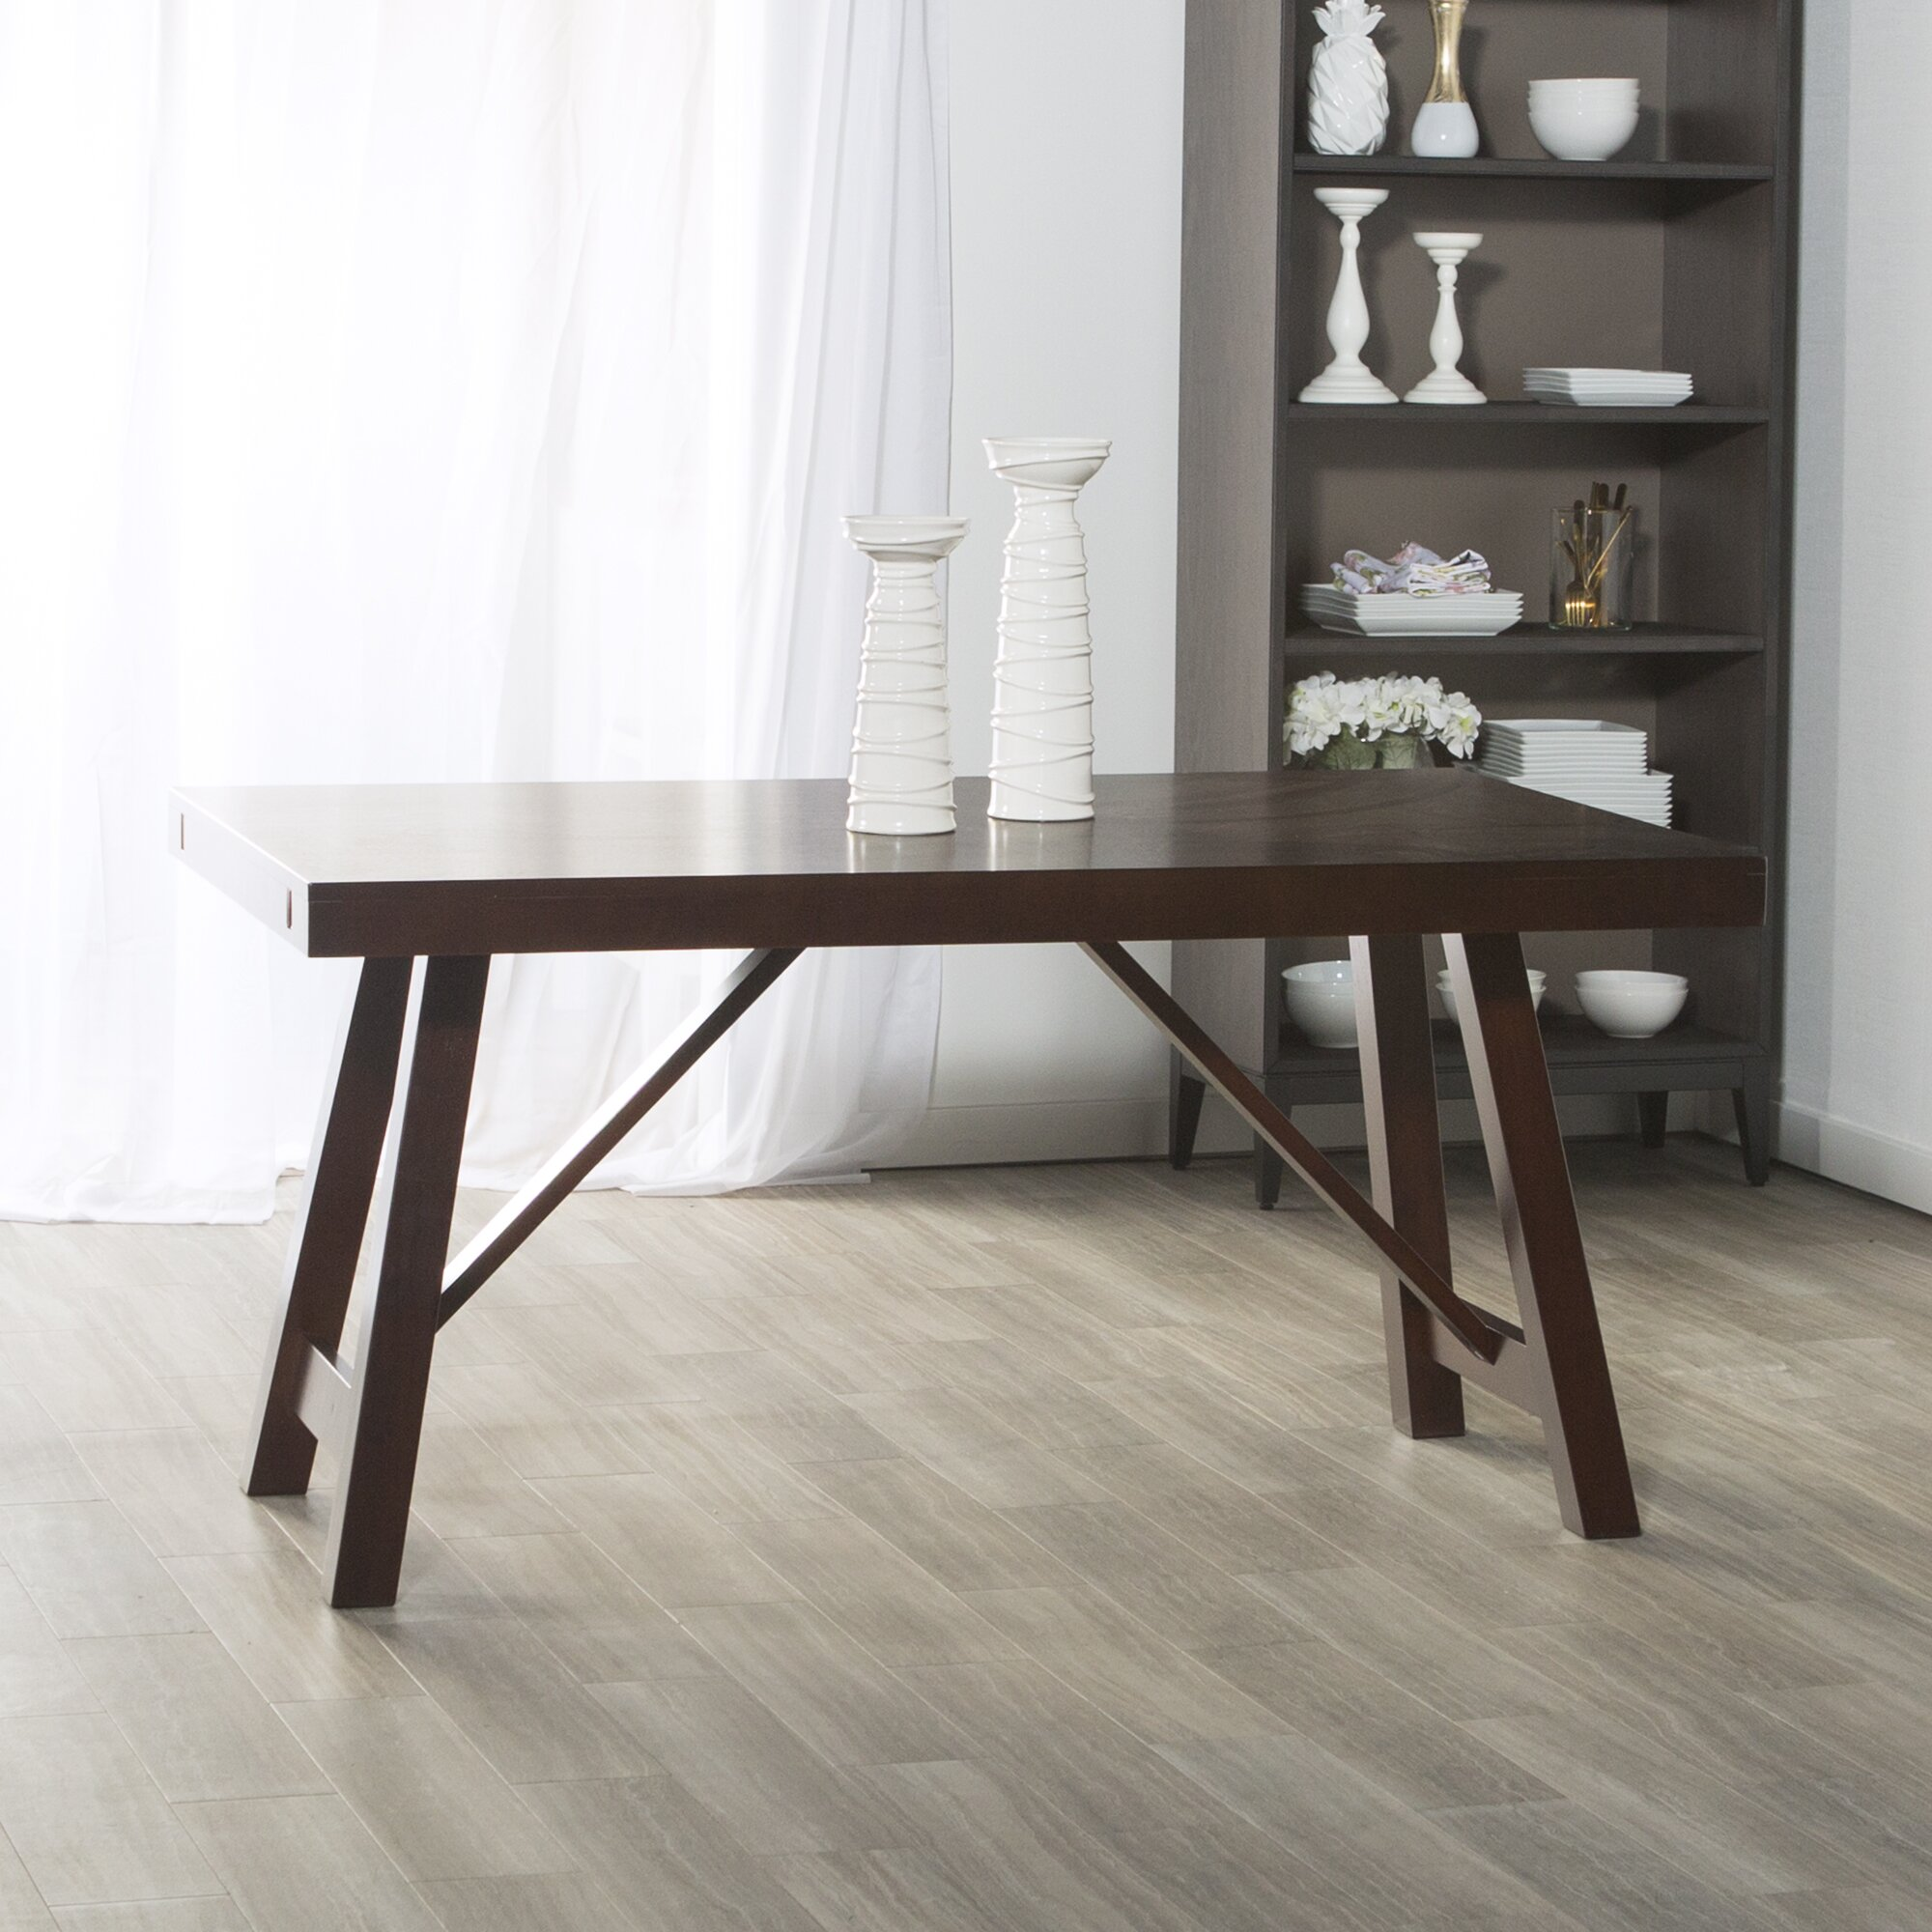 Dining Unfinished Wood Trestle Bench International: Loon Peak Chiswick Solid Wood Trestle Extendable Dining